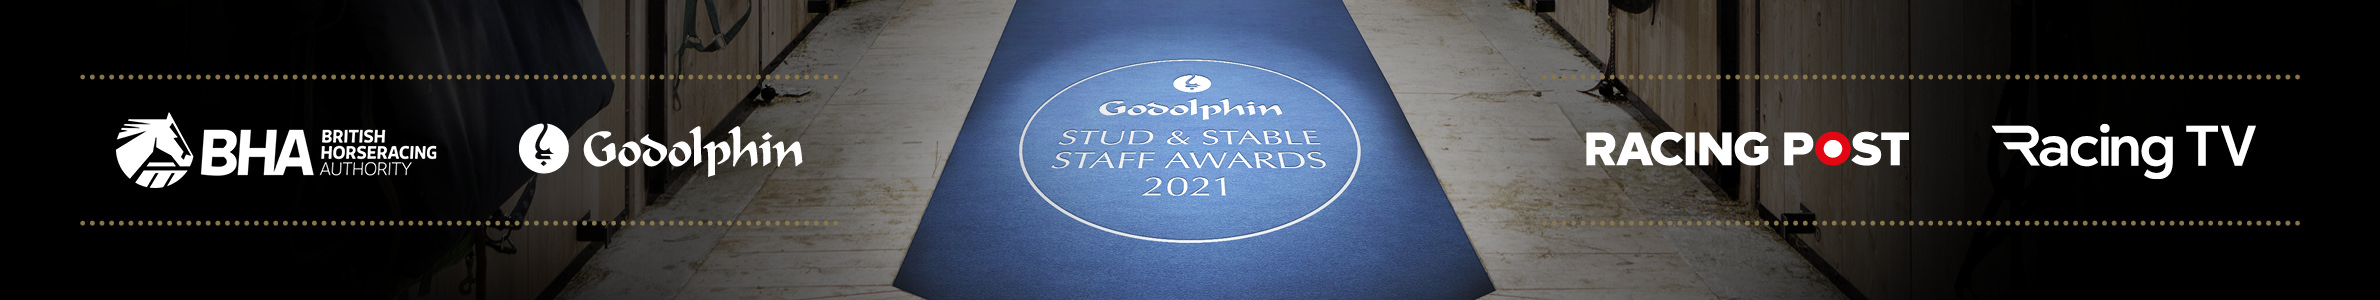 Stud and Stable Staff Awards 2021 image